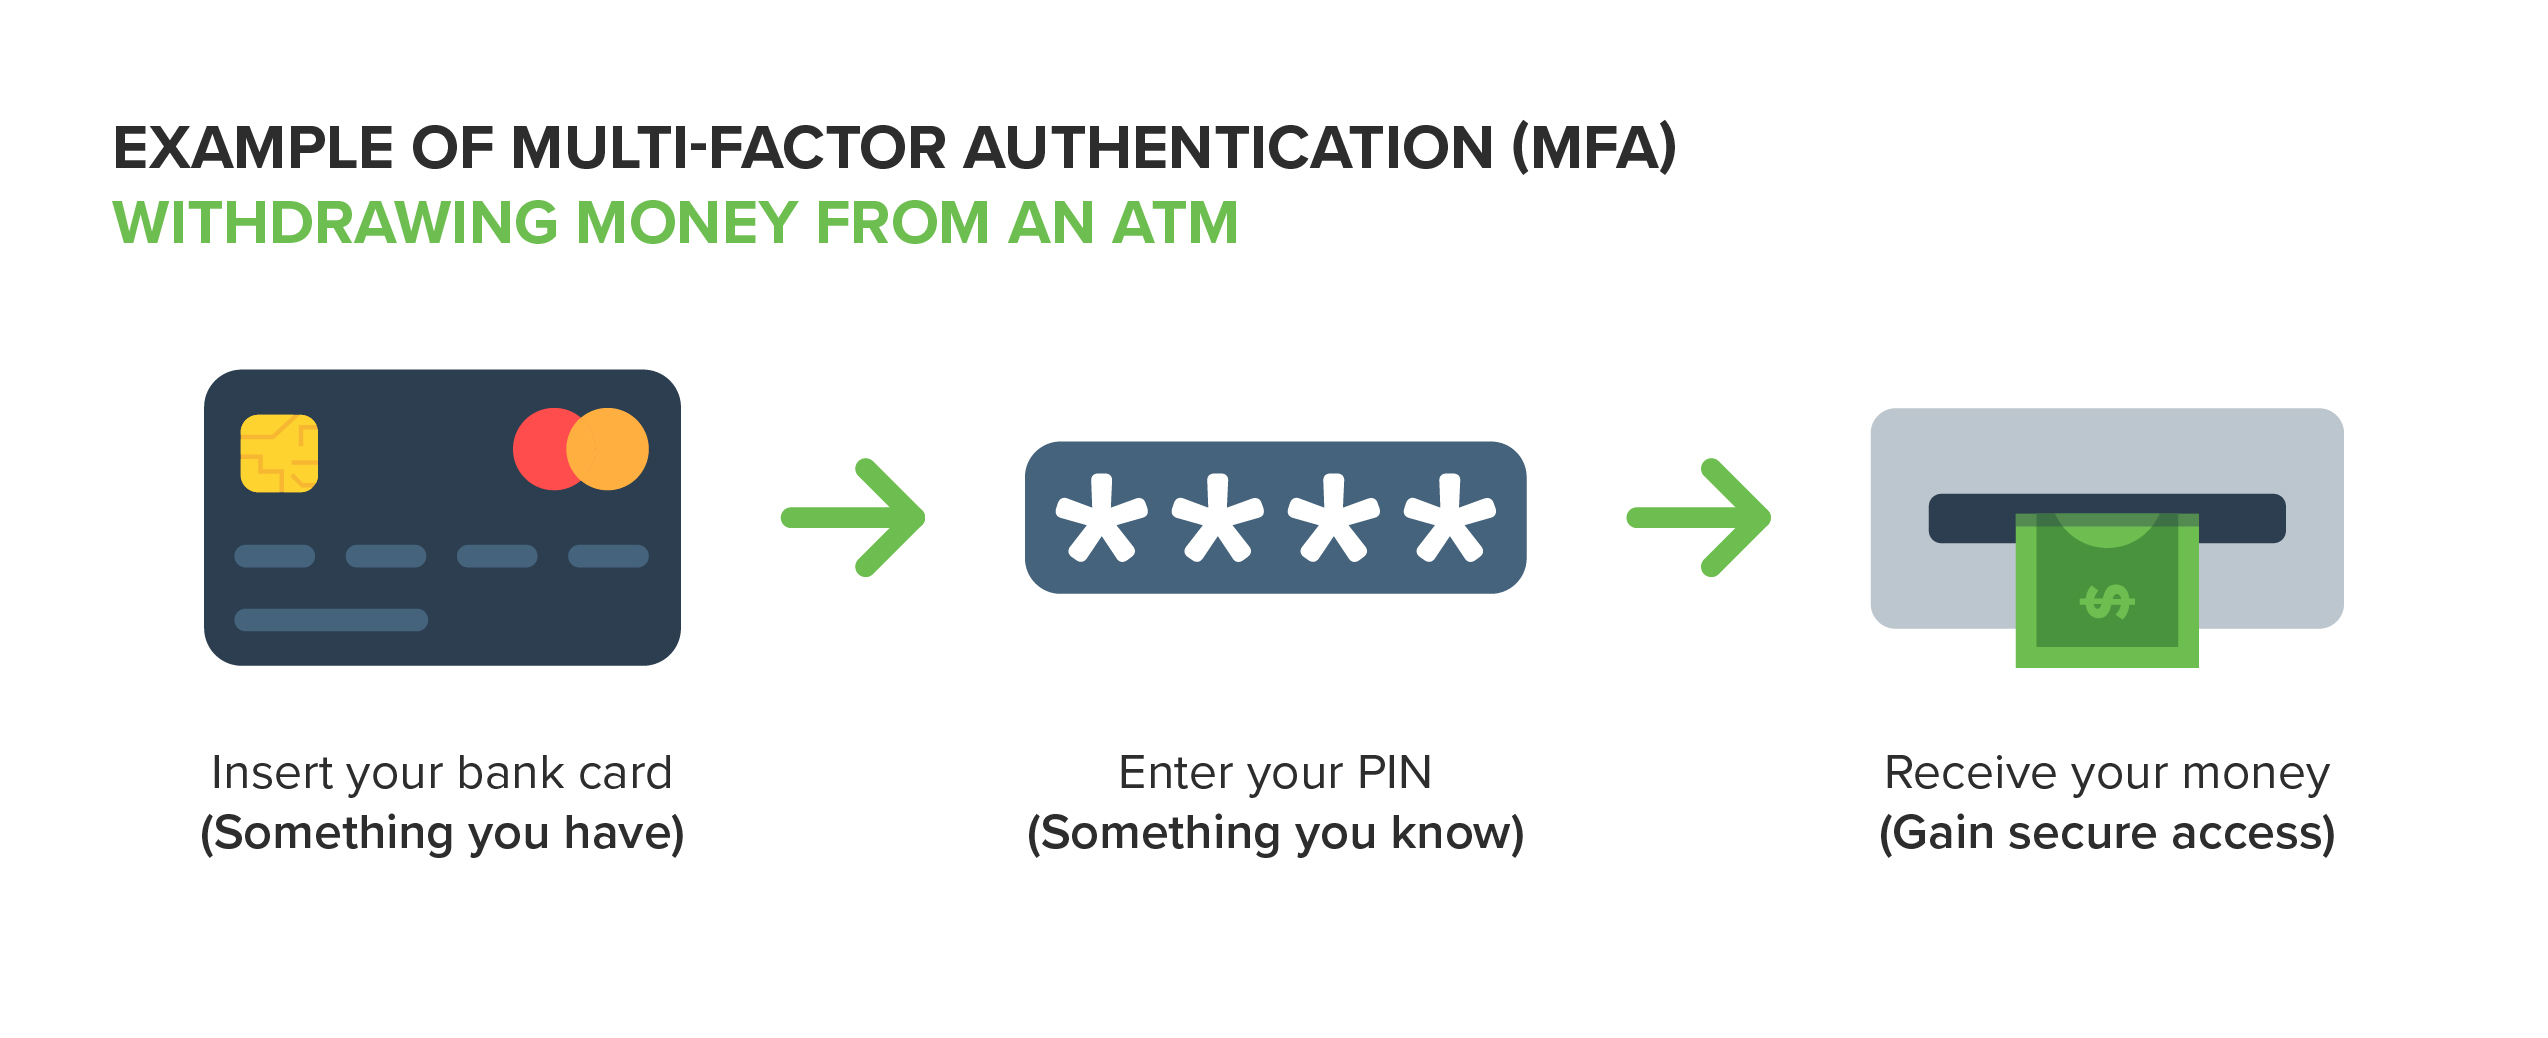 Graphic: MFA Withdrawal from ATM Example